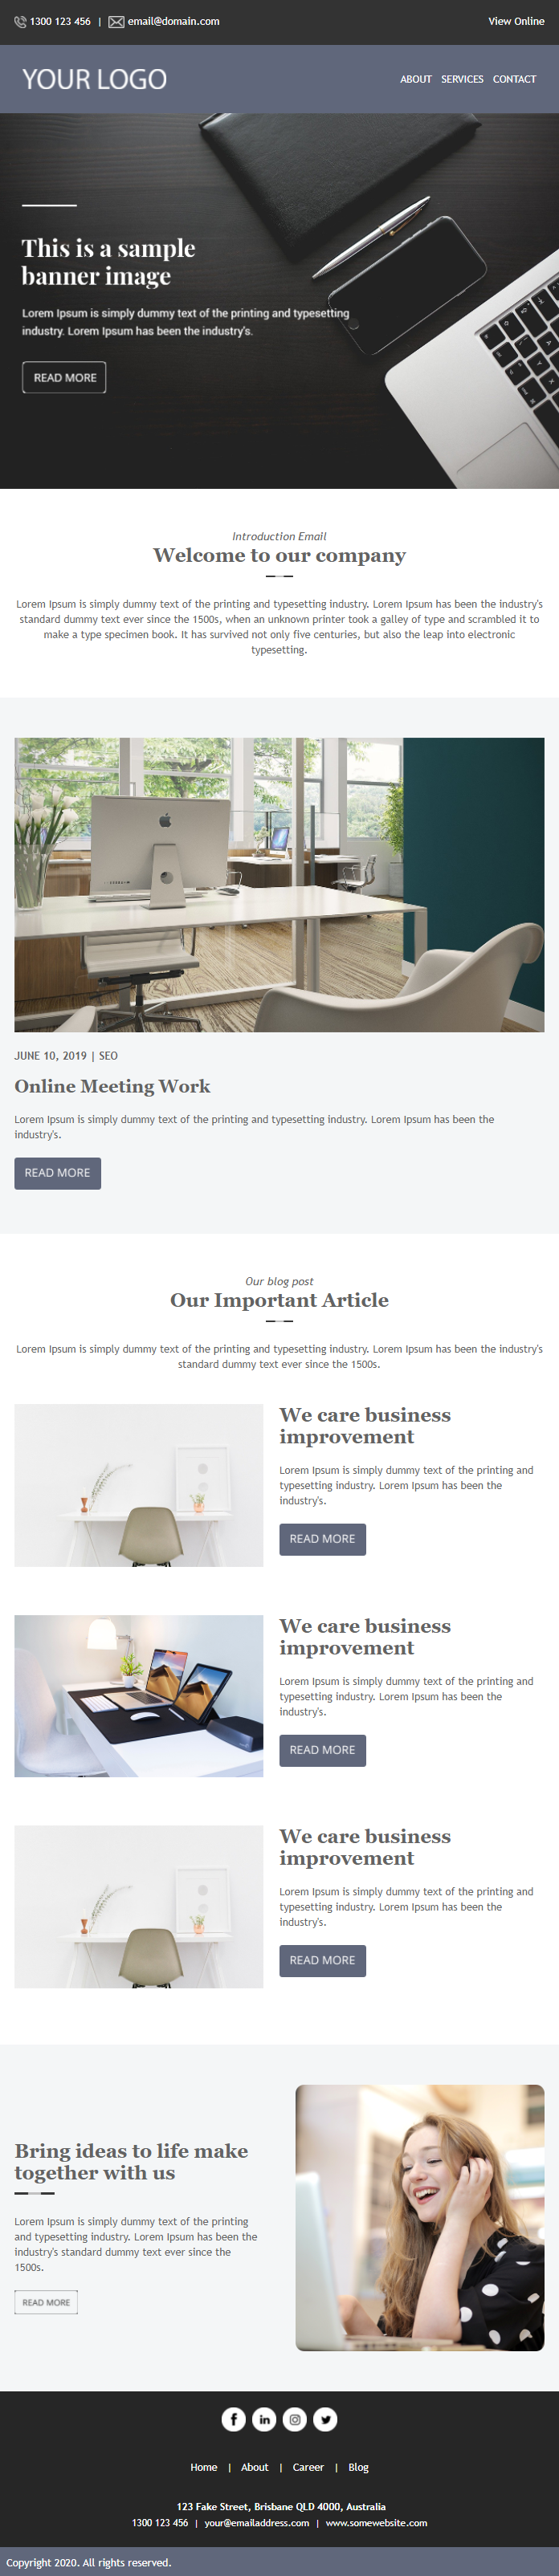 Newsletter Template for Curated Content